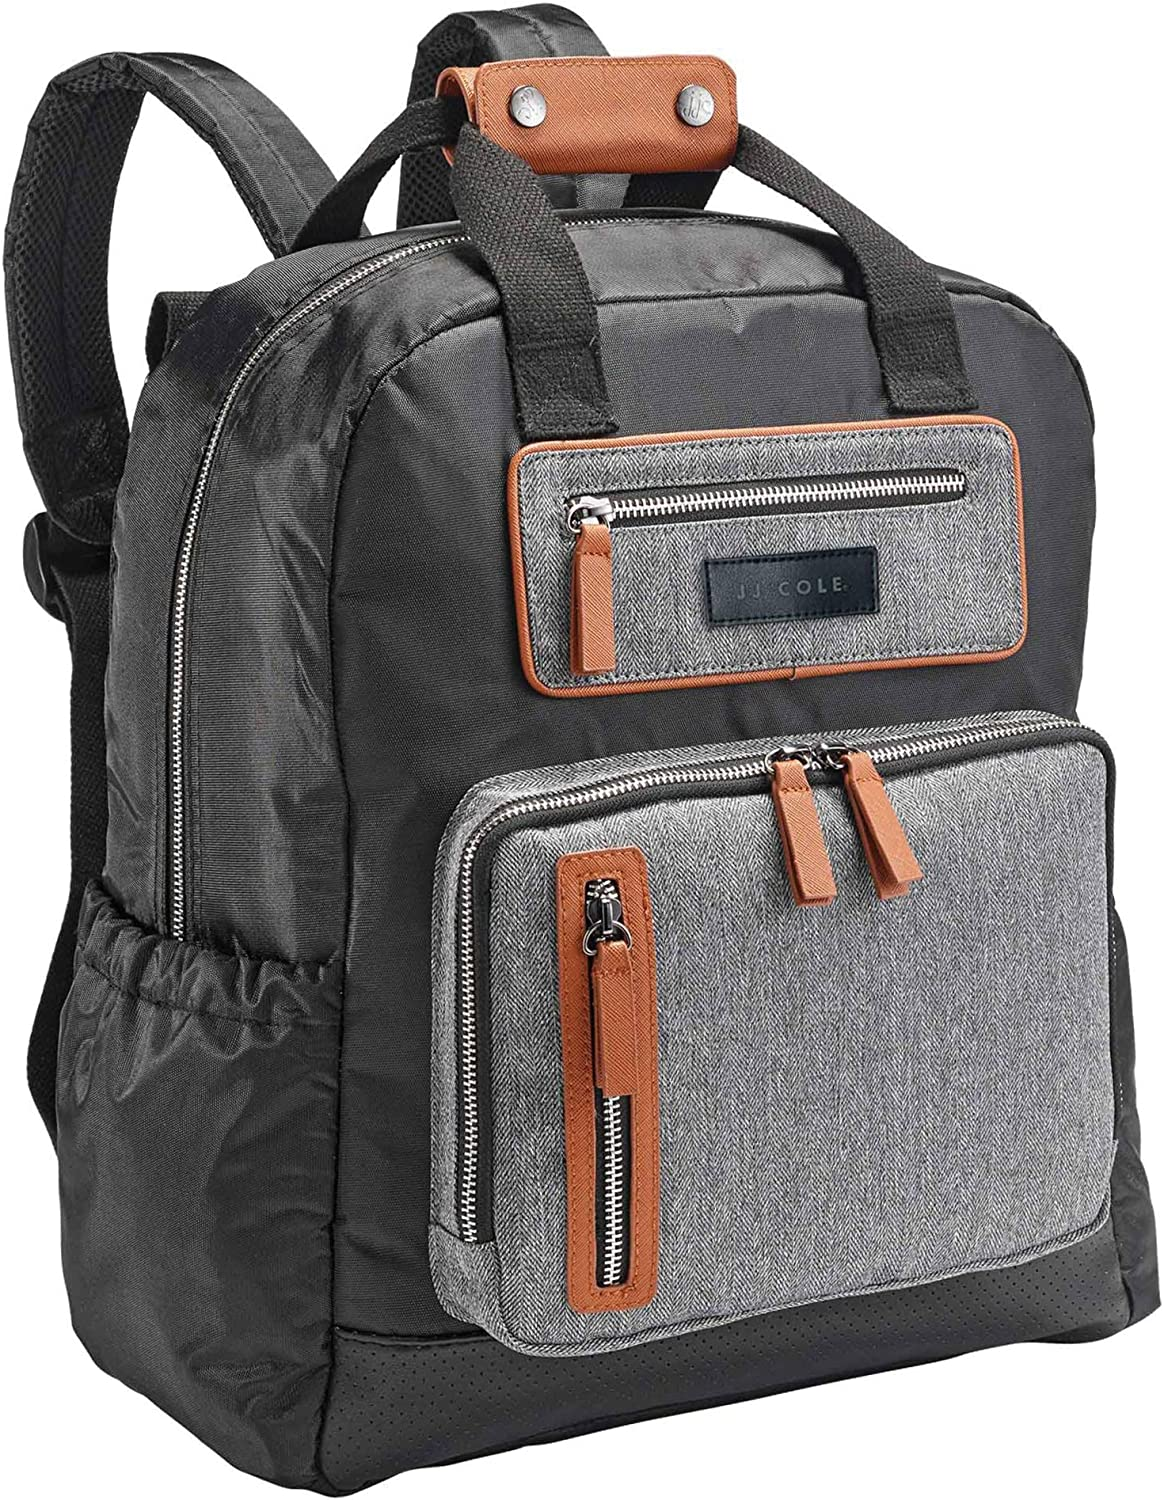 ventas calientes JJ JJ JJ Cole Infant Baby Papago Pack Men's Diaper Bag Backpack Herringbone Tweed  gran venta